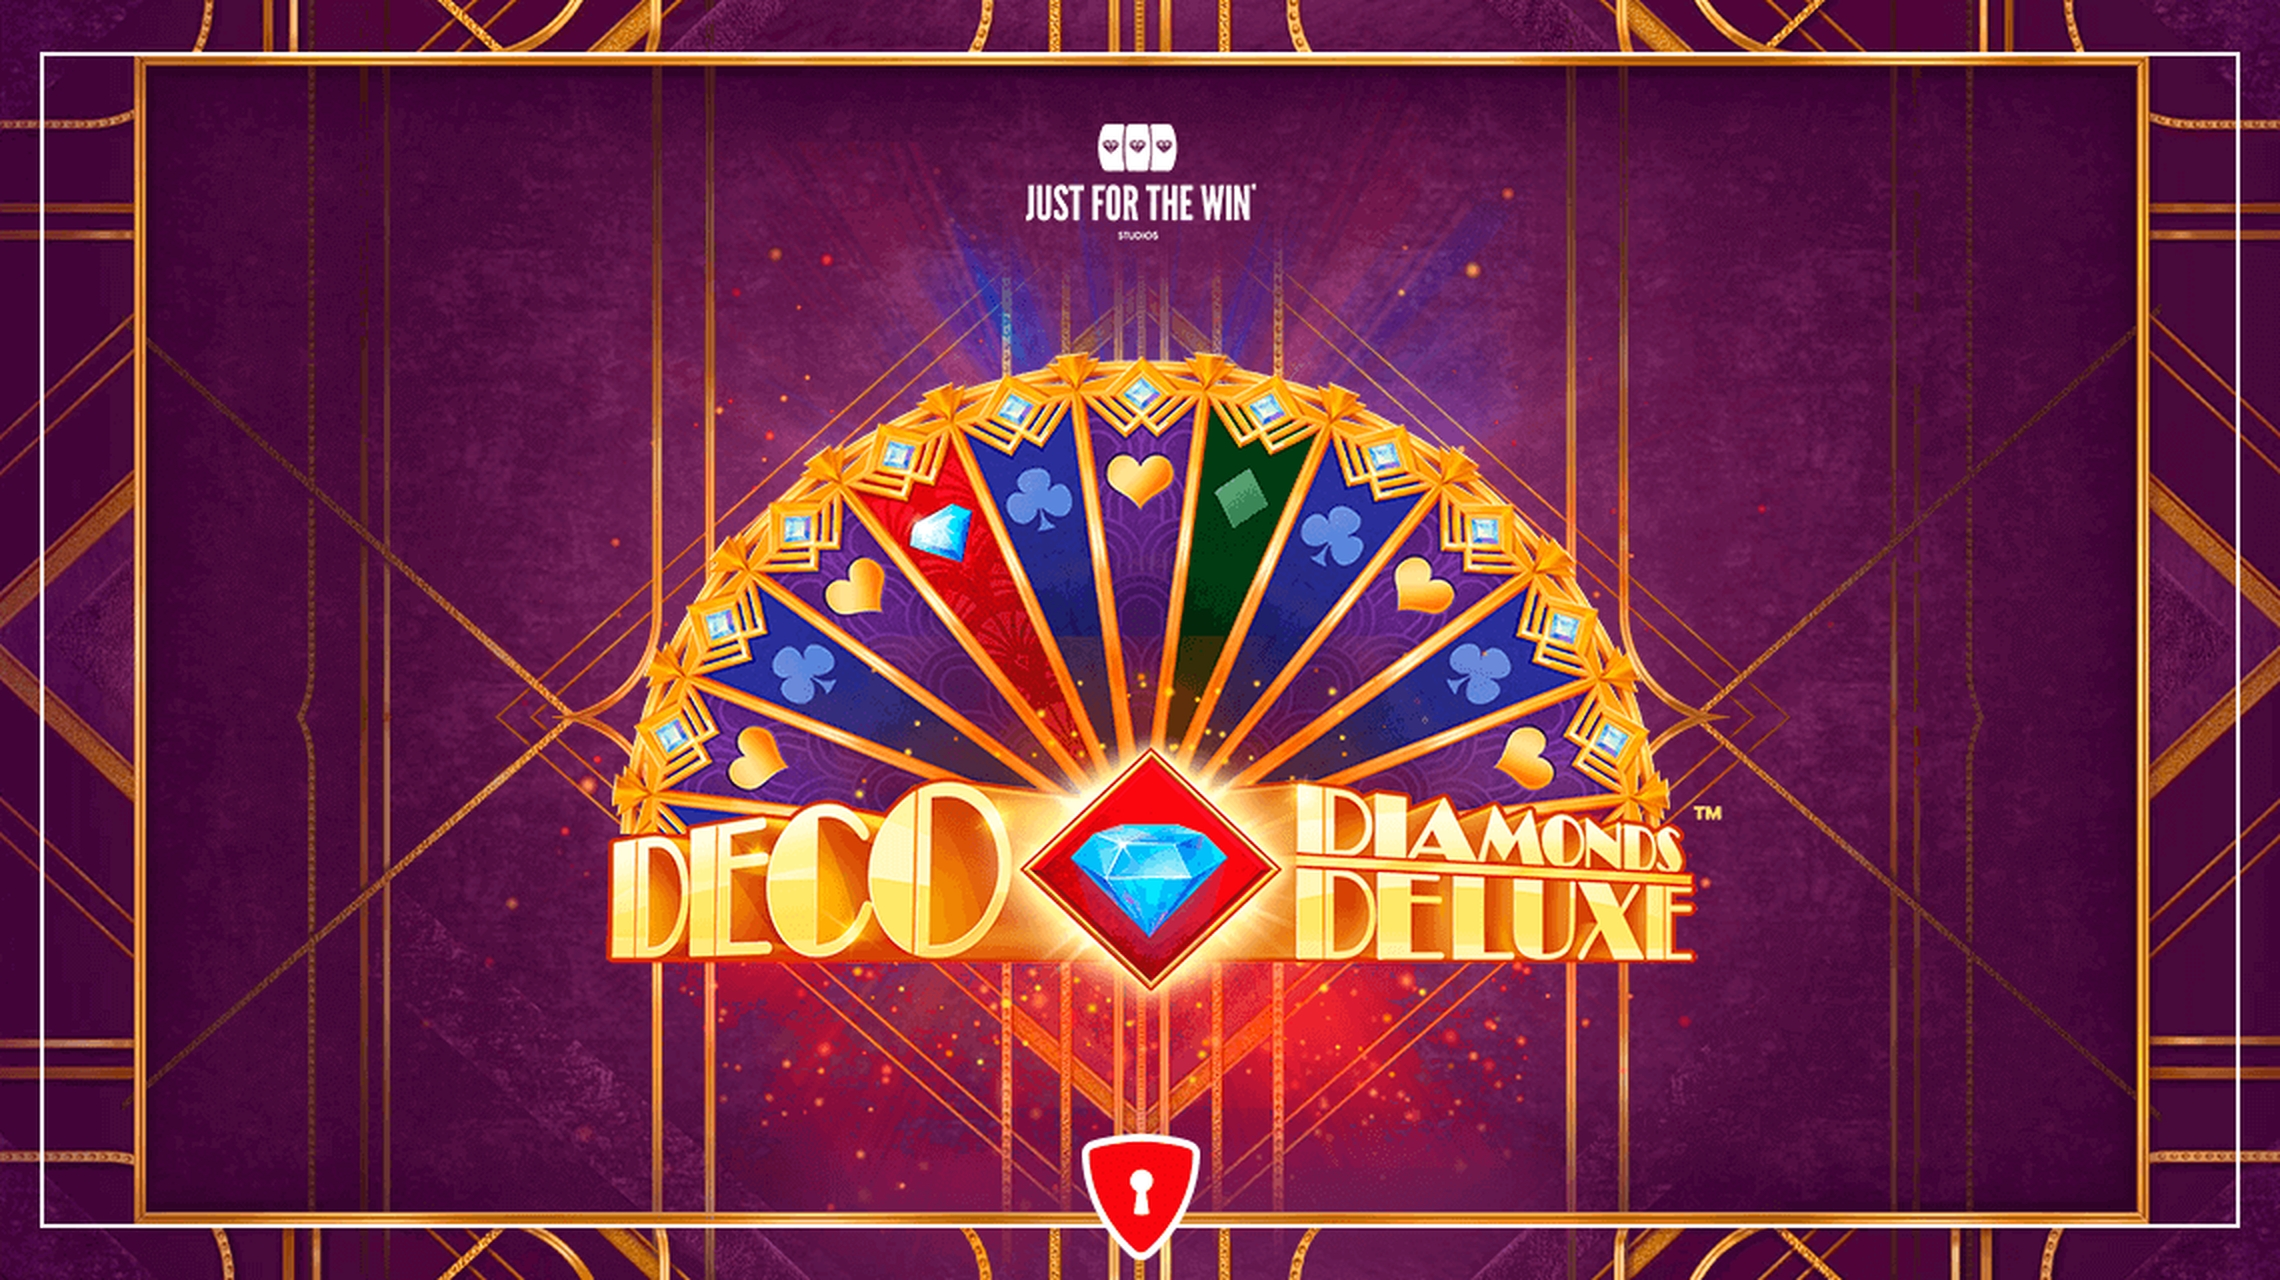 Win Money in Deco Diamonds Deluxe Free Slot Game by Just For The Win